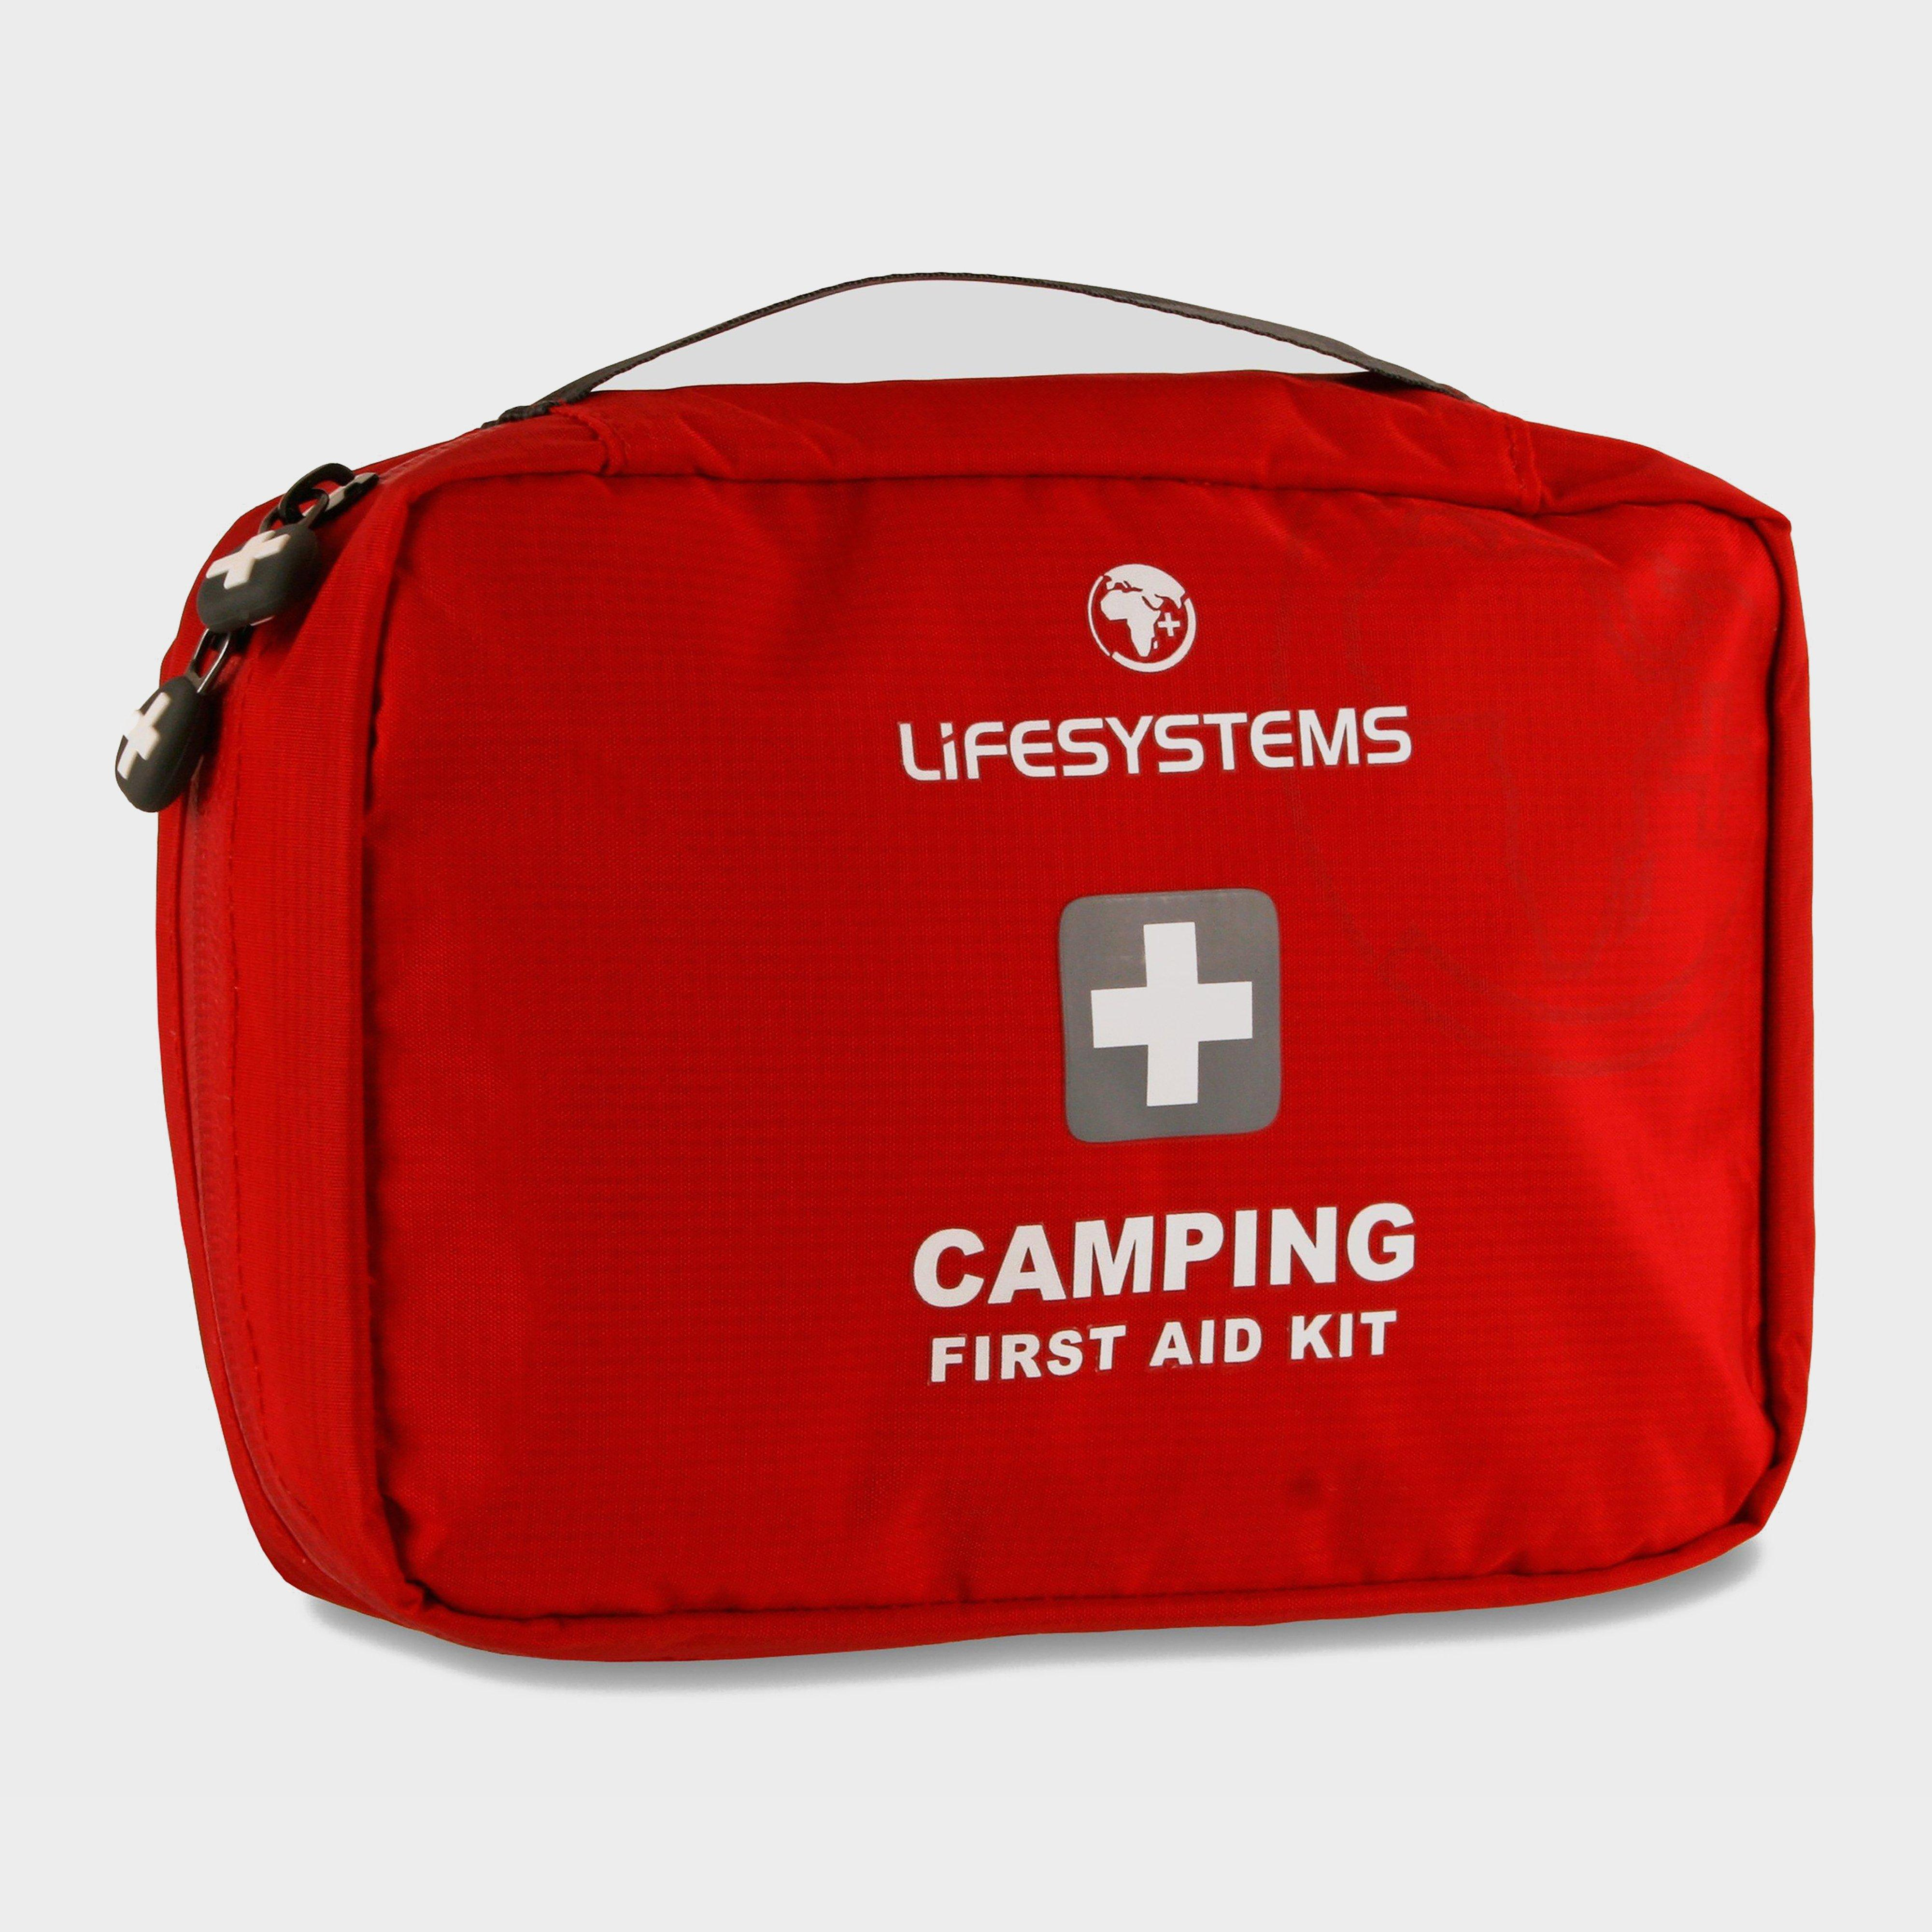 Lifesystems Camping First Aid Kit  DofE Red